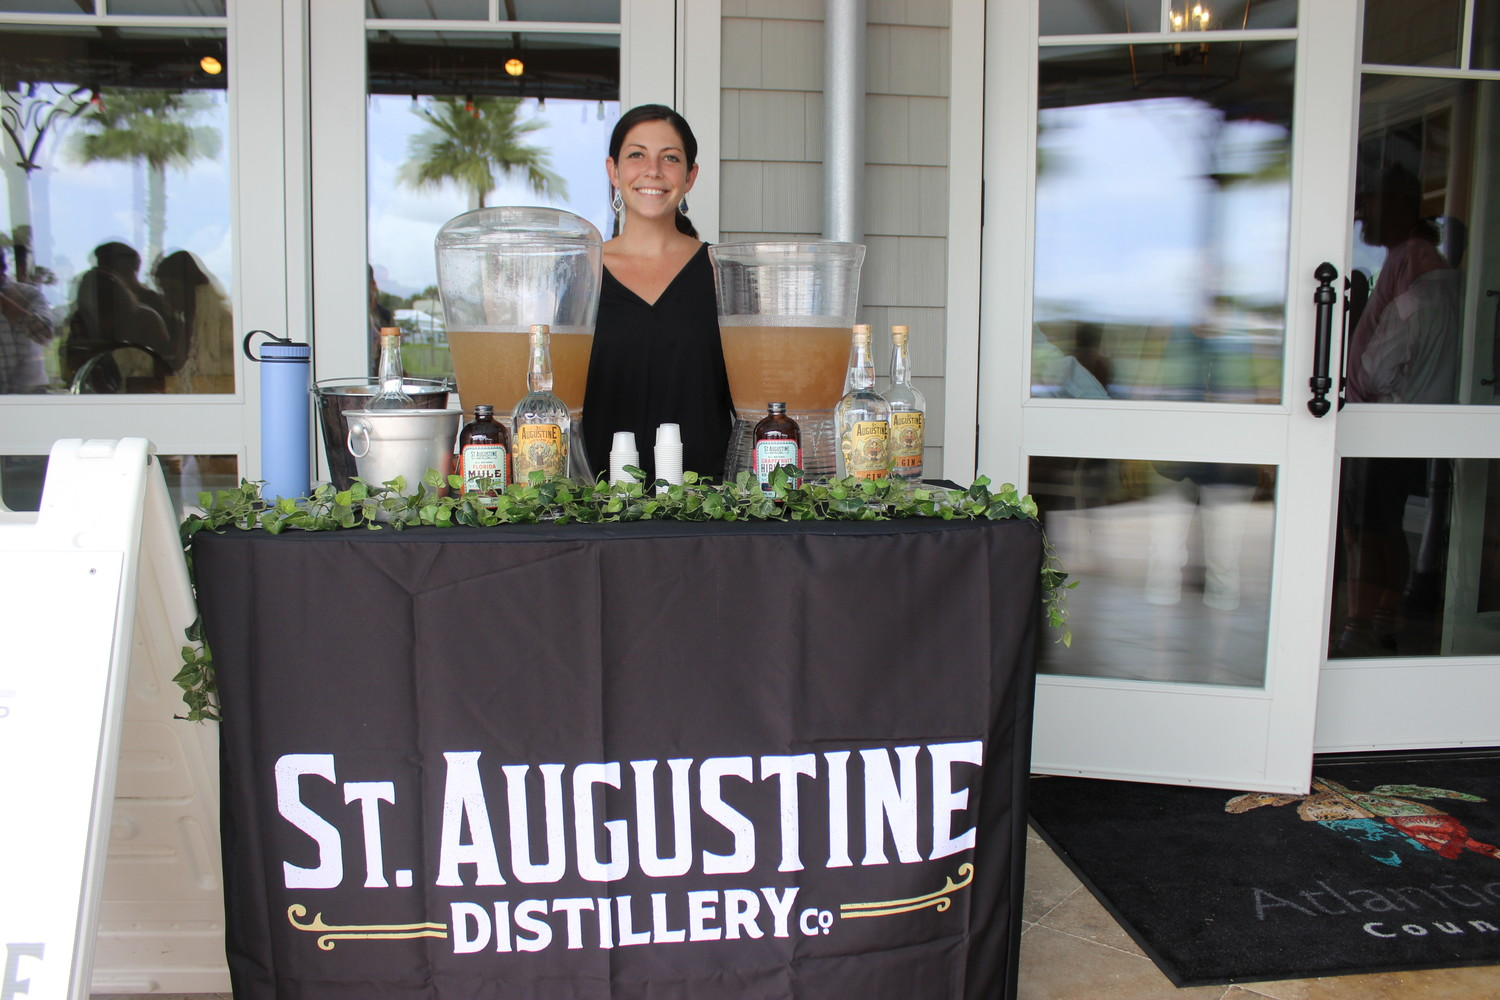 St. Augustine Distillery offers drink samples at the event.